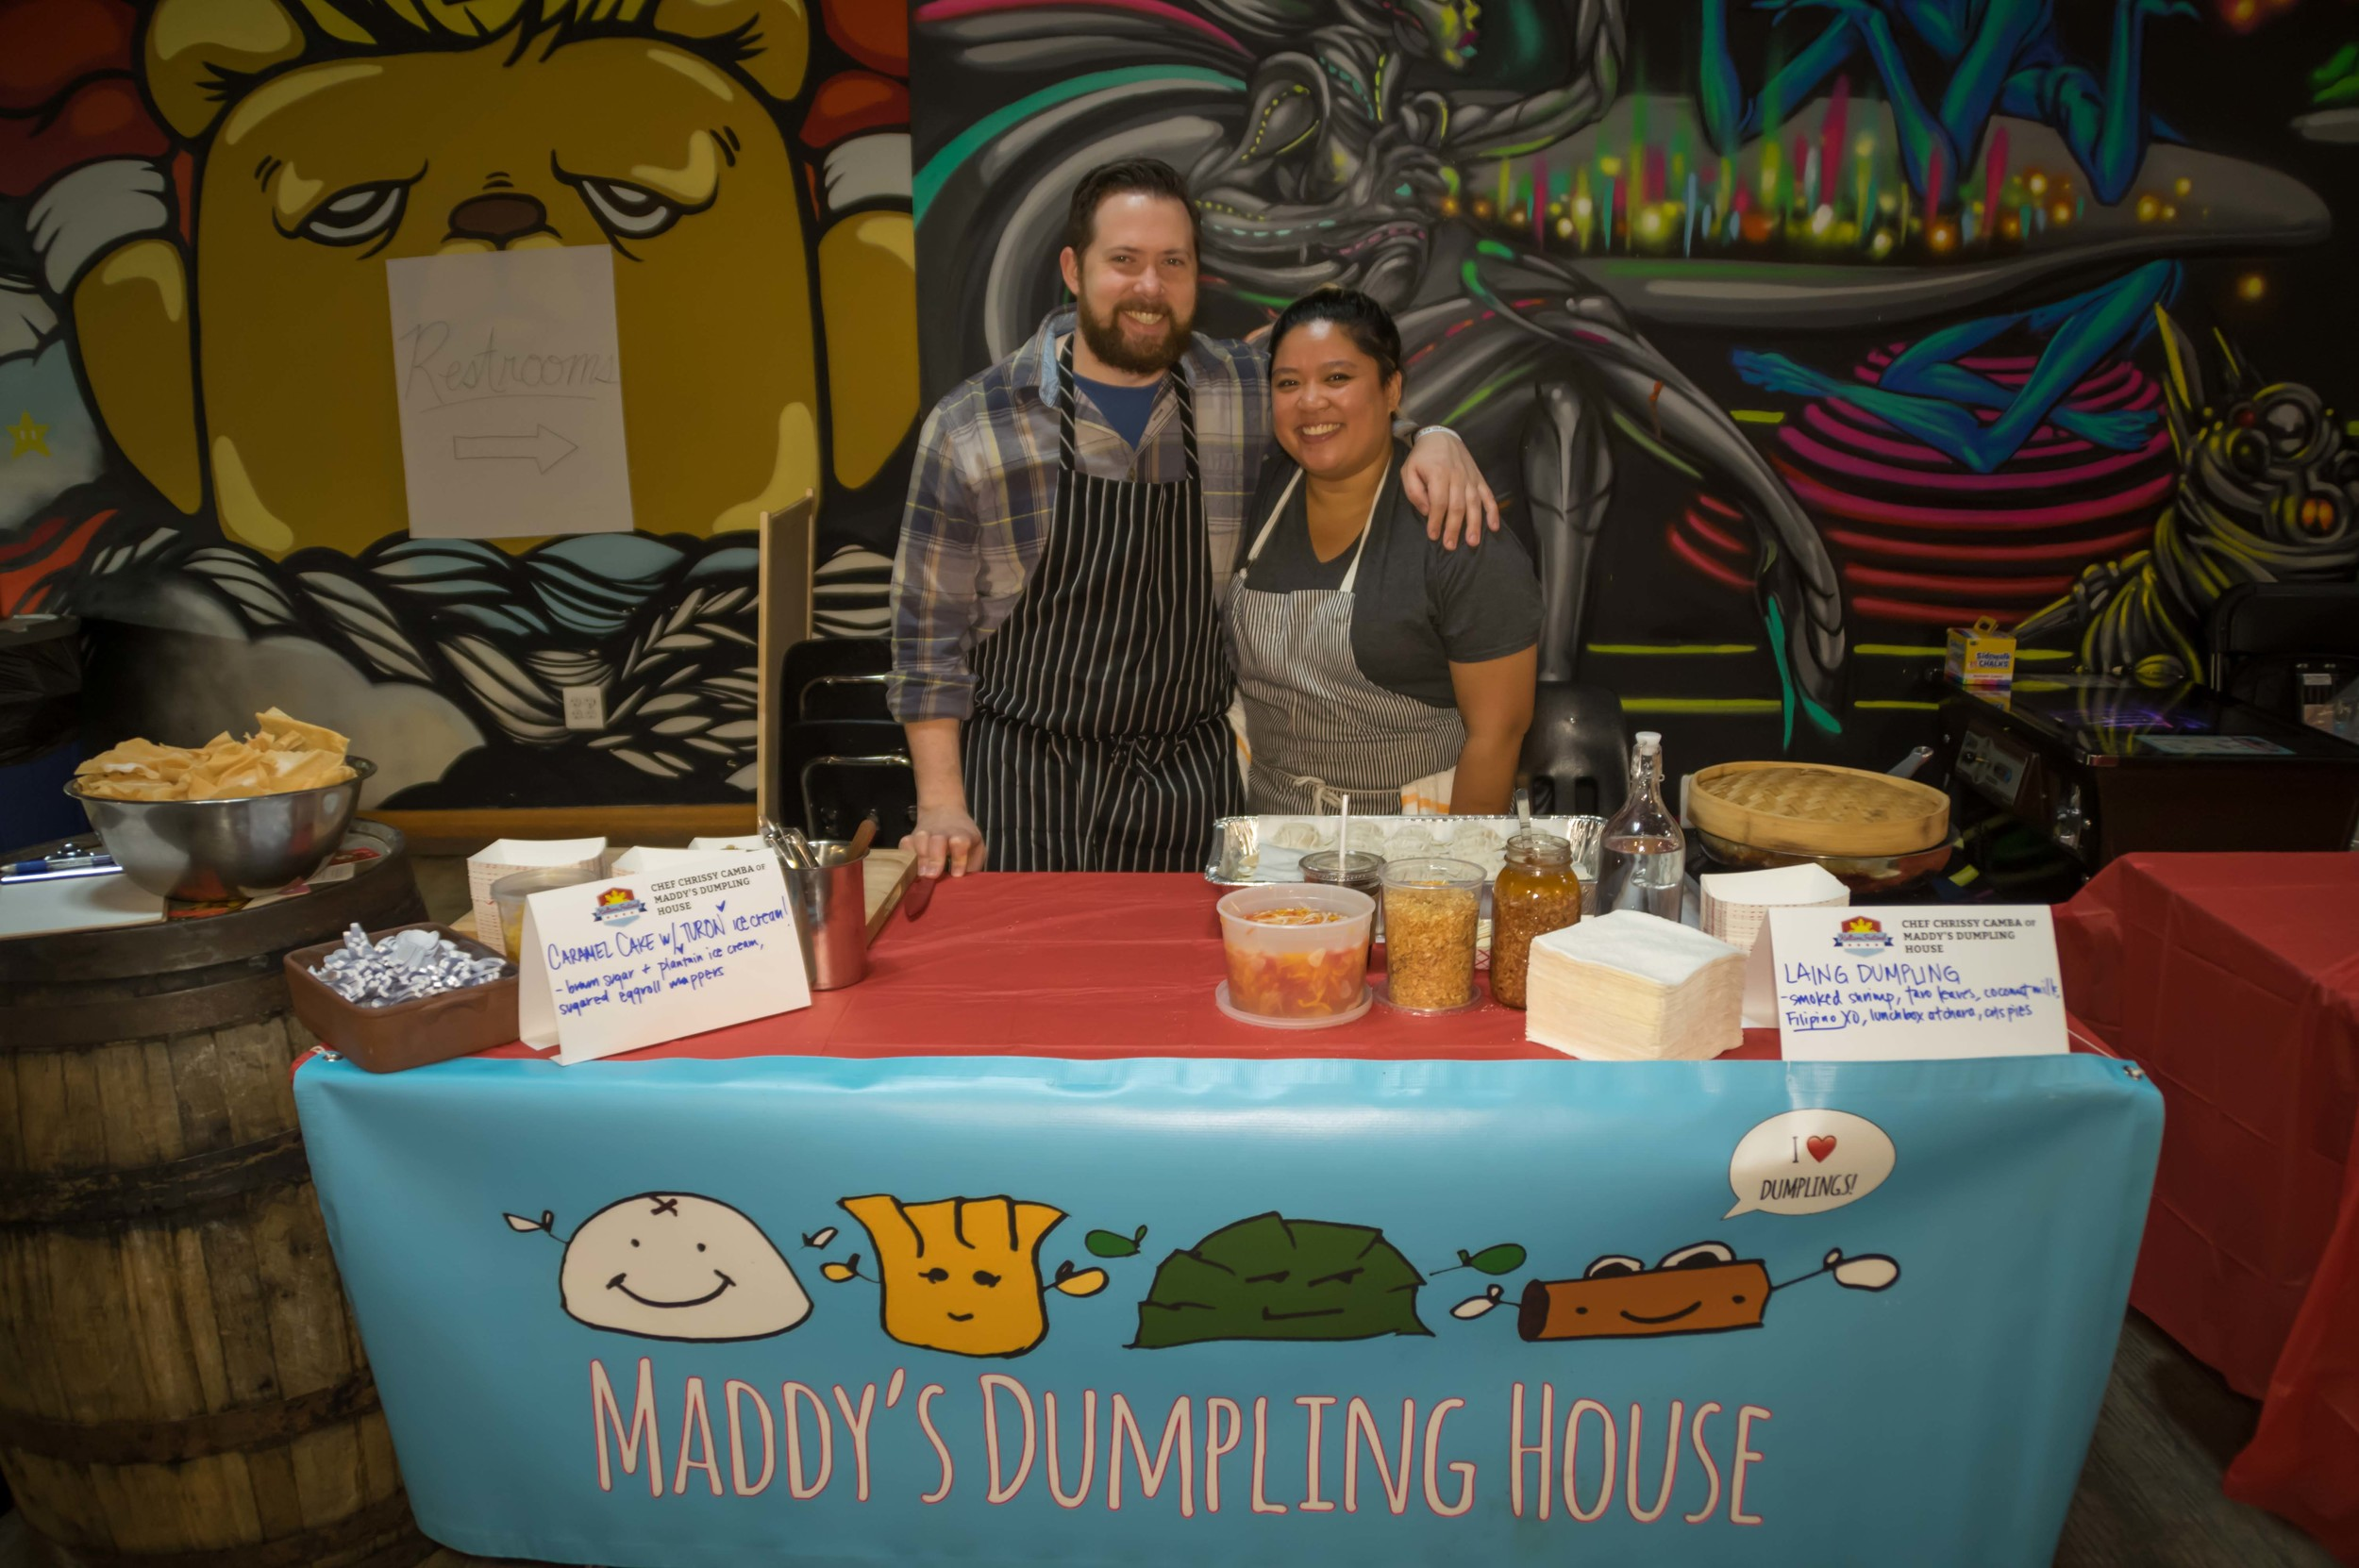 Chef Chrissy Camba of pop-up Maddy's Dumpling House with her fiancé, Chef Ashlee Aubin of Wood and Salero.Photo credit: Bryan Becares.